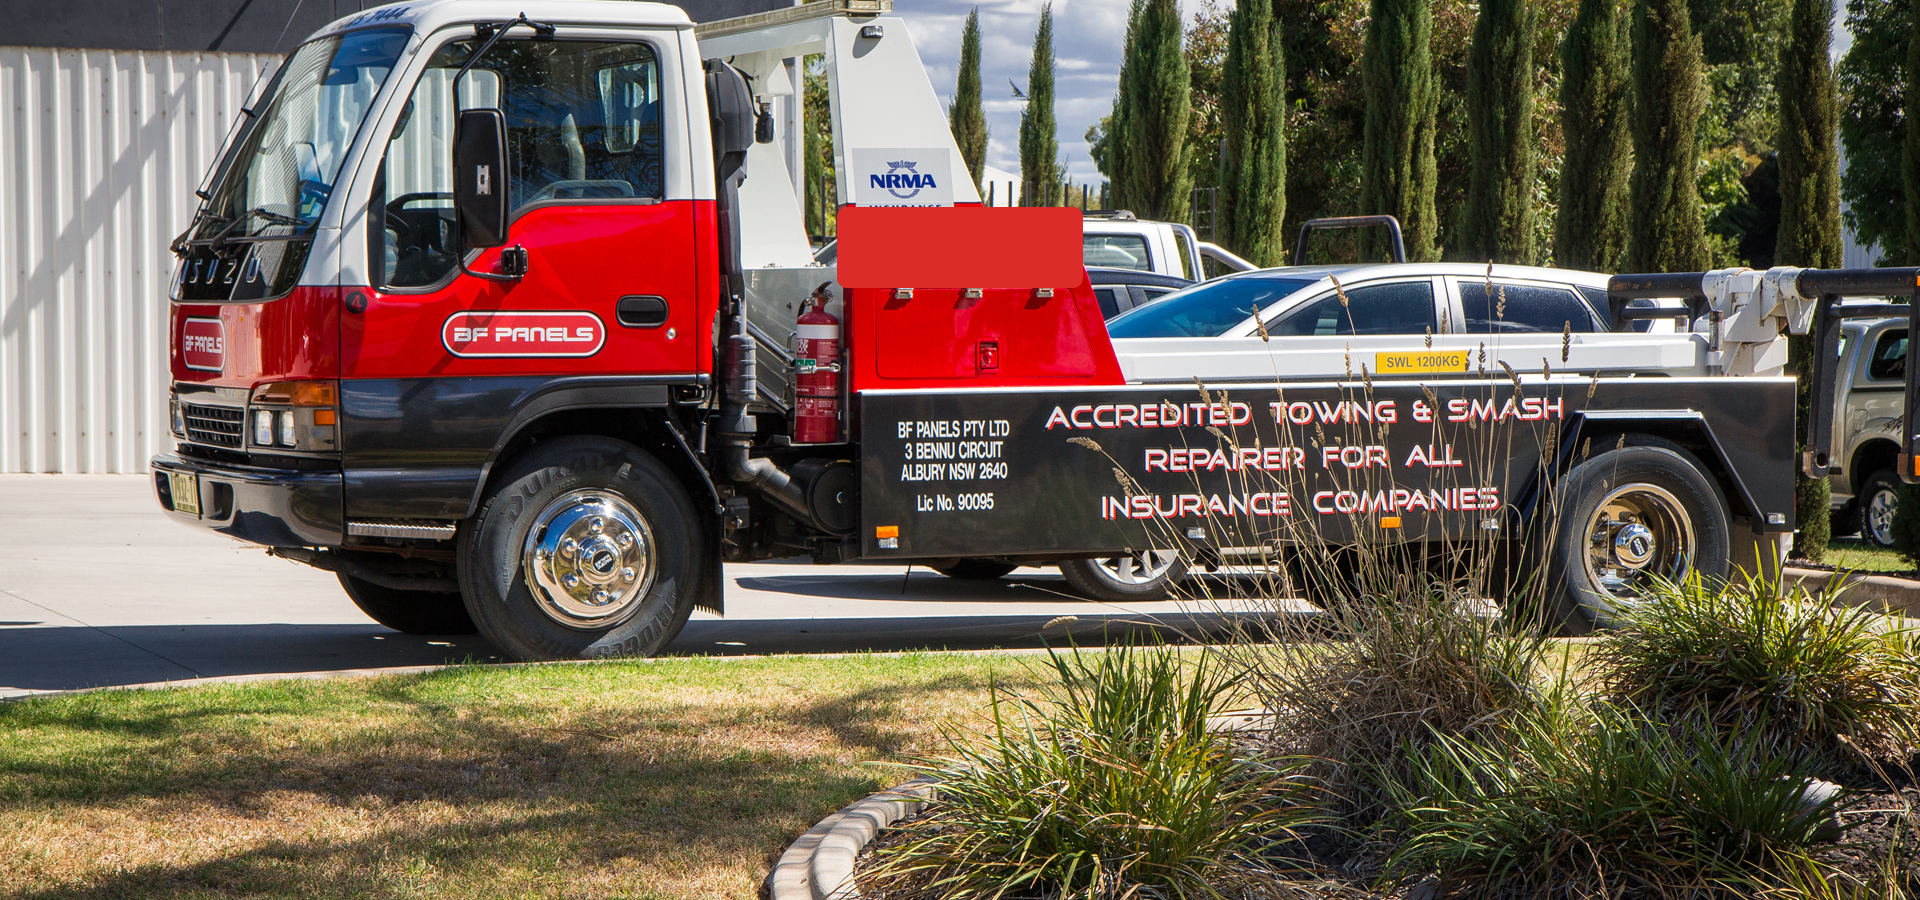 What to do when you are in need of emergency towing service?